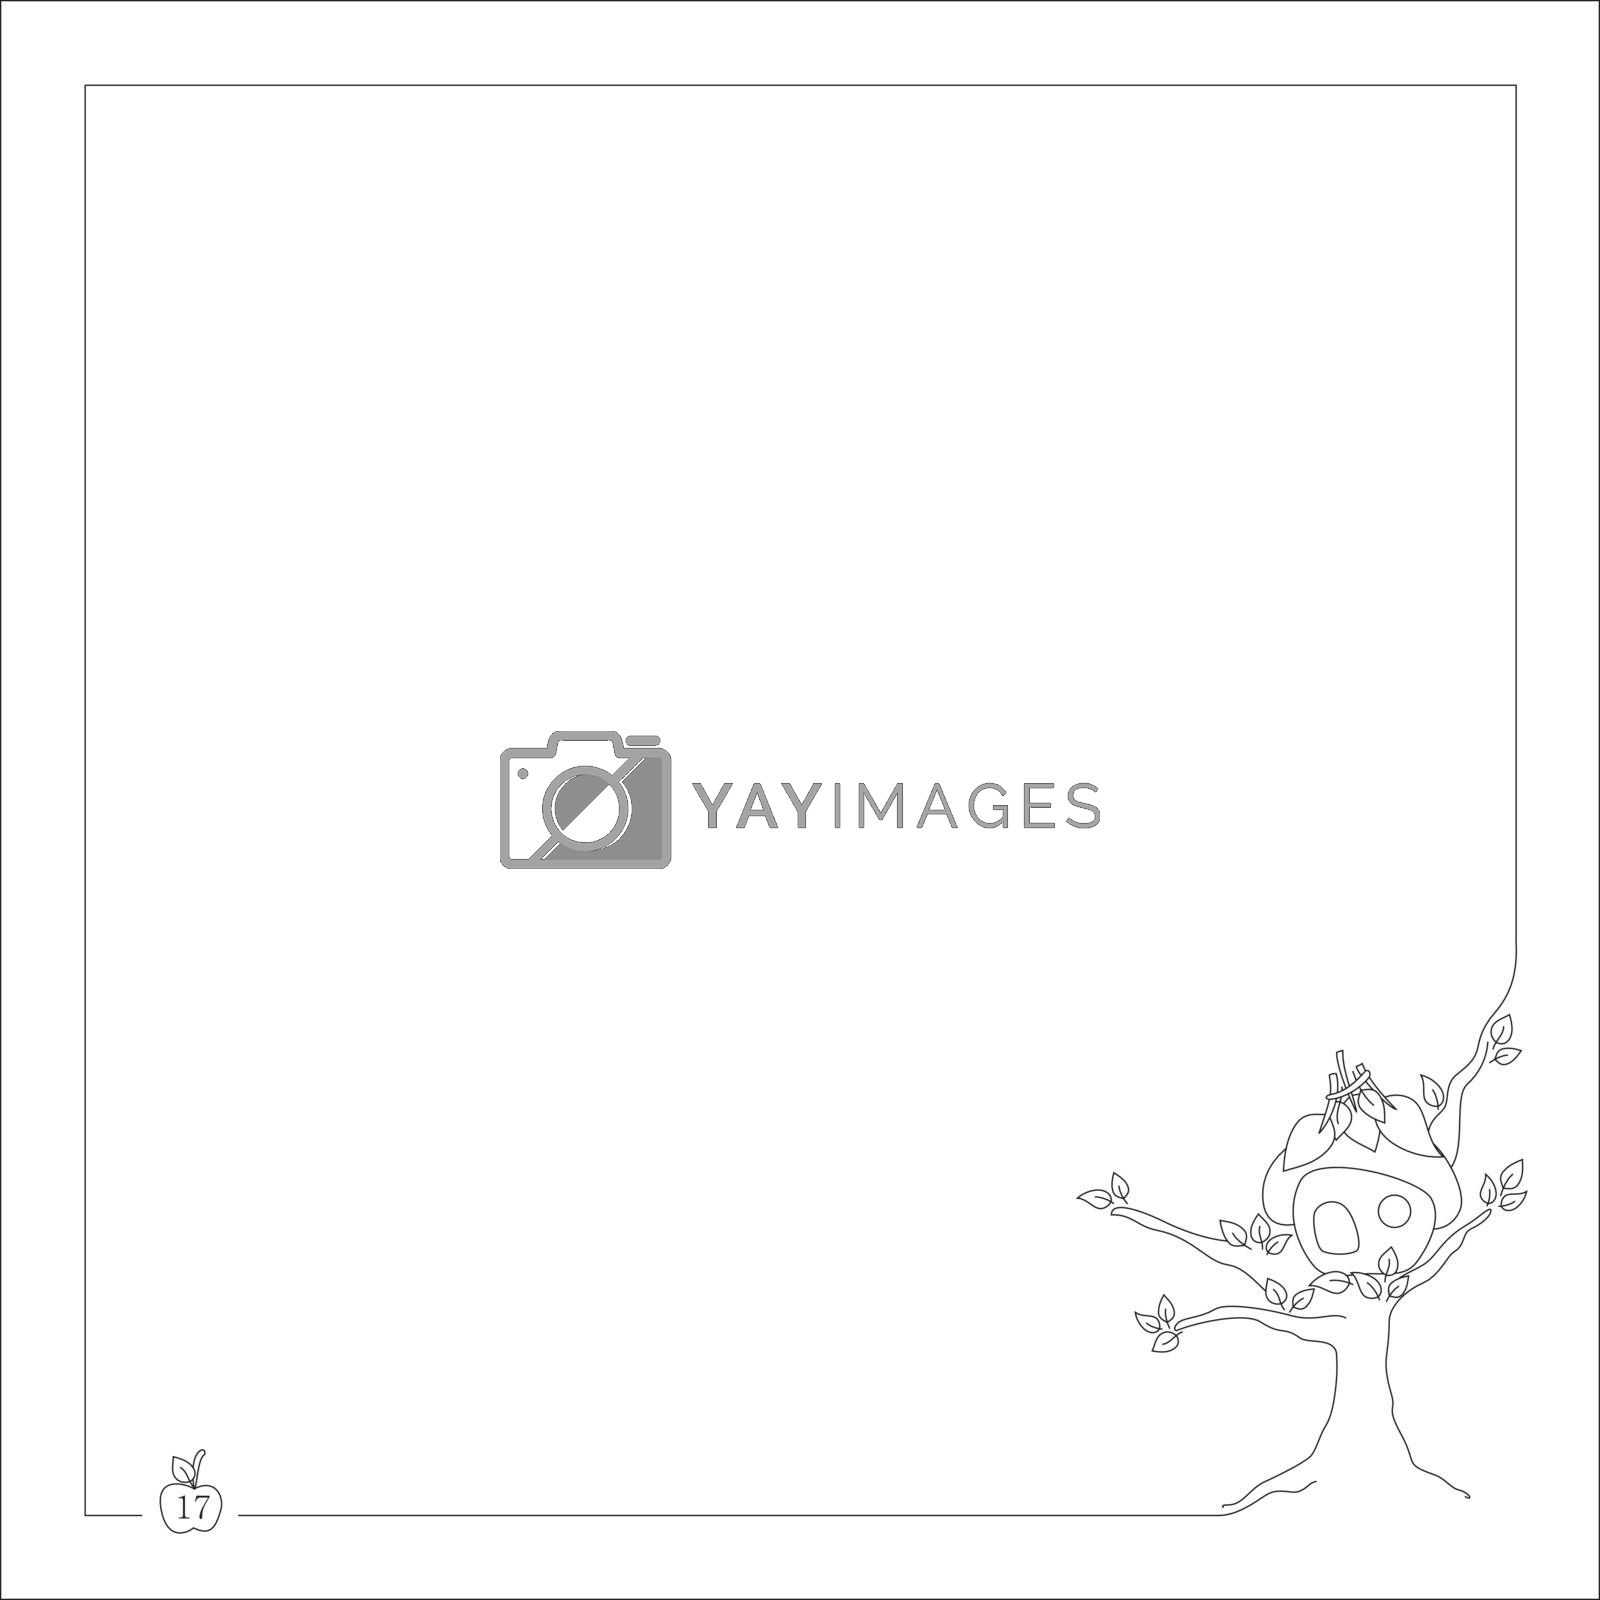 Royalty free image of small house on the tree for notebook and book with frame by mturhanlar